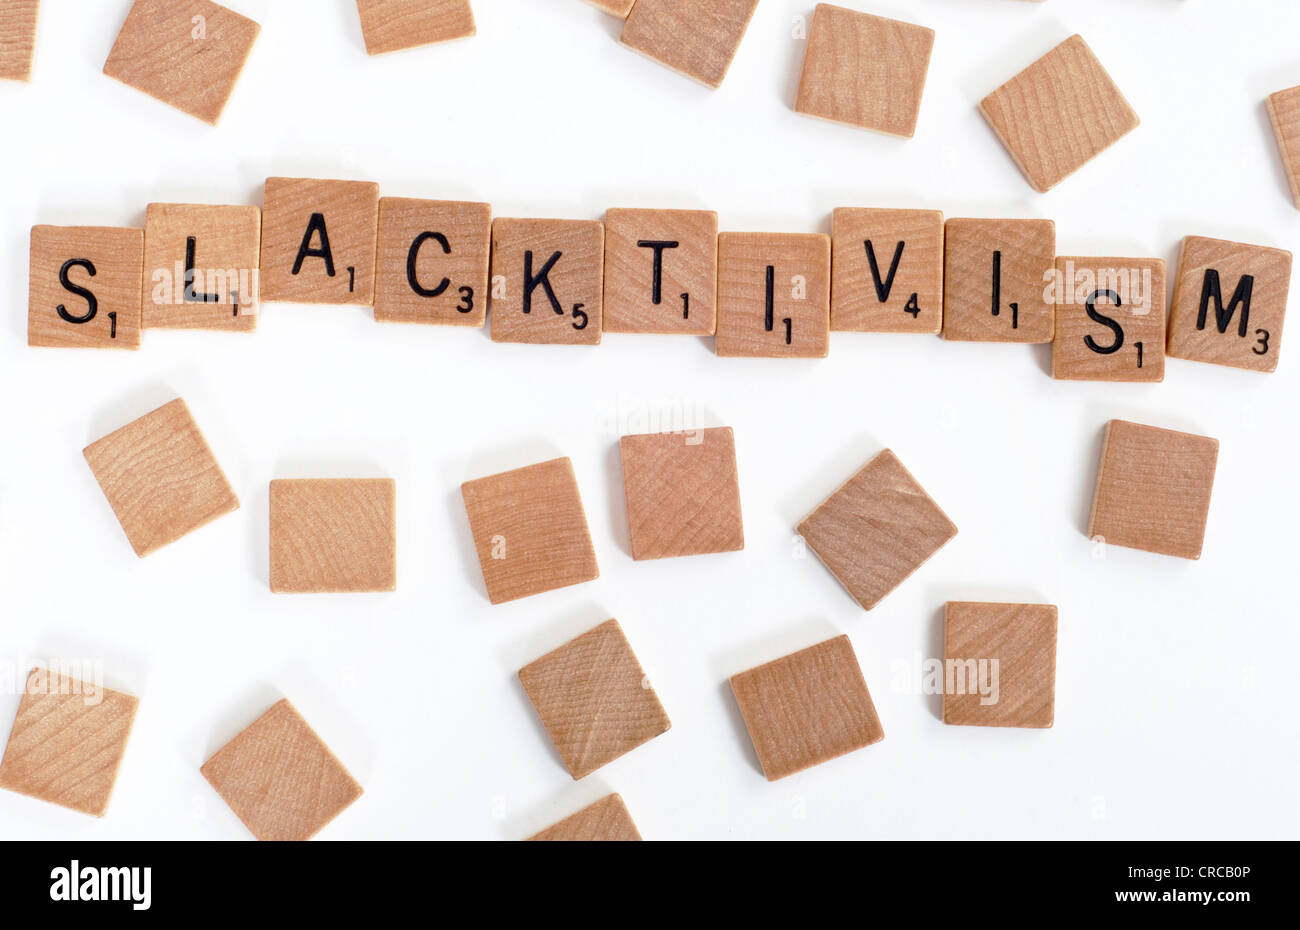 Wood Scrabble tiles spelling out the words 'Slacktivism'. On white - Stock Image